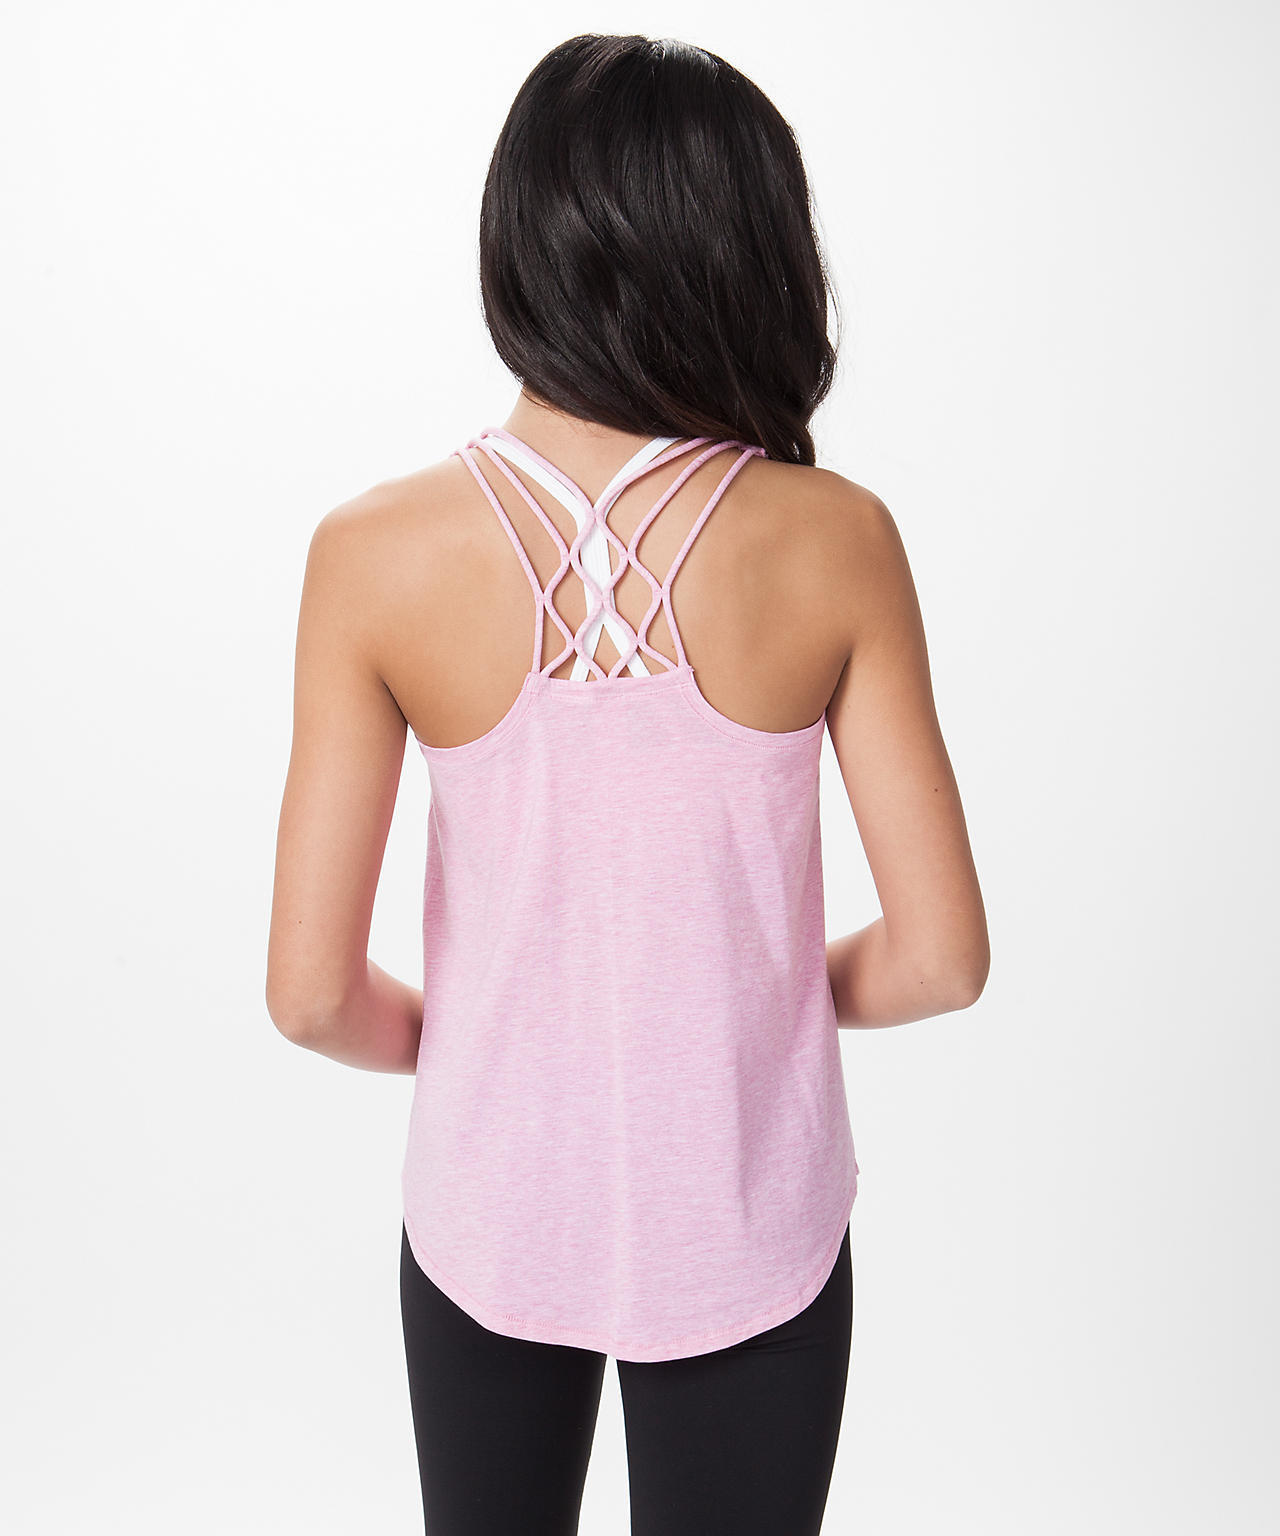 【 Quiet Moments Tank 】★ Heathered Pow Pink